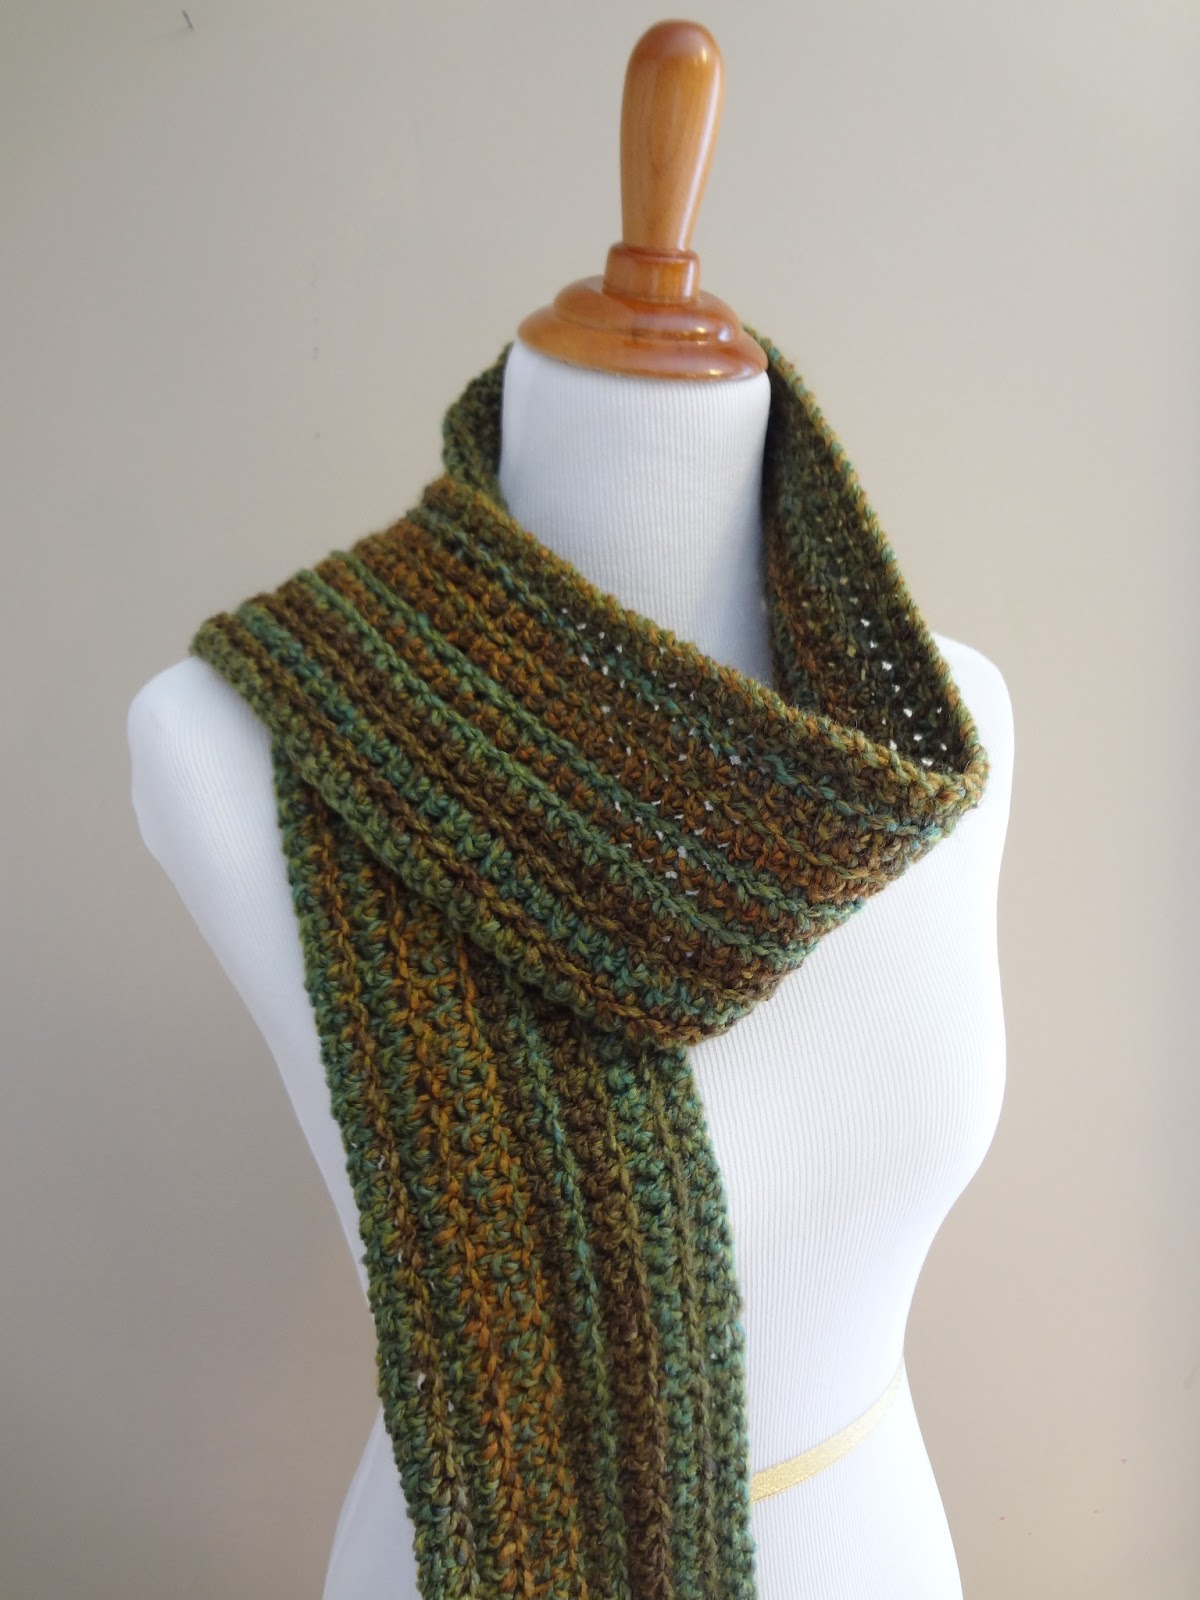 How To Crochet A Scarf : the wise oak scarf is a basic ribbed scarf that is warm and